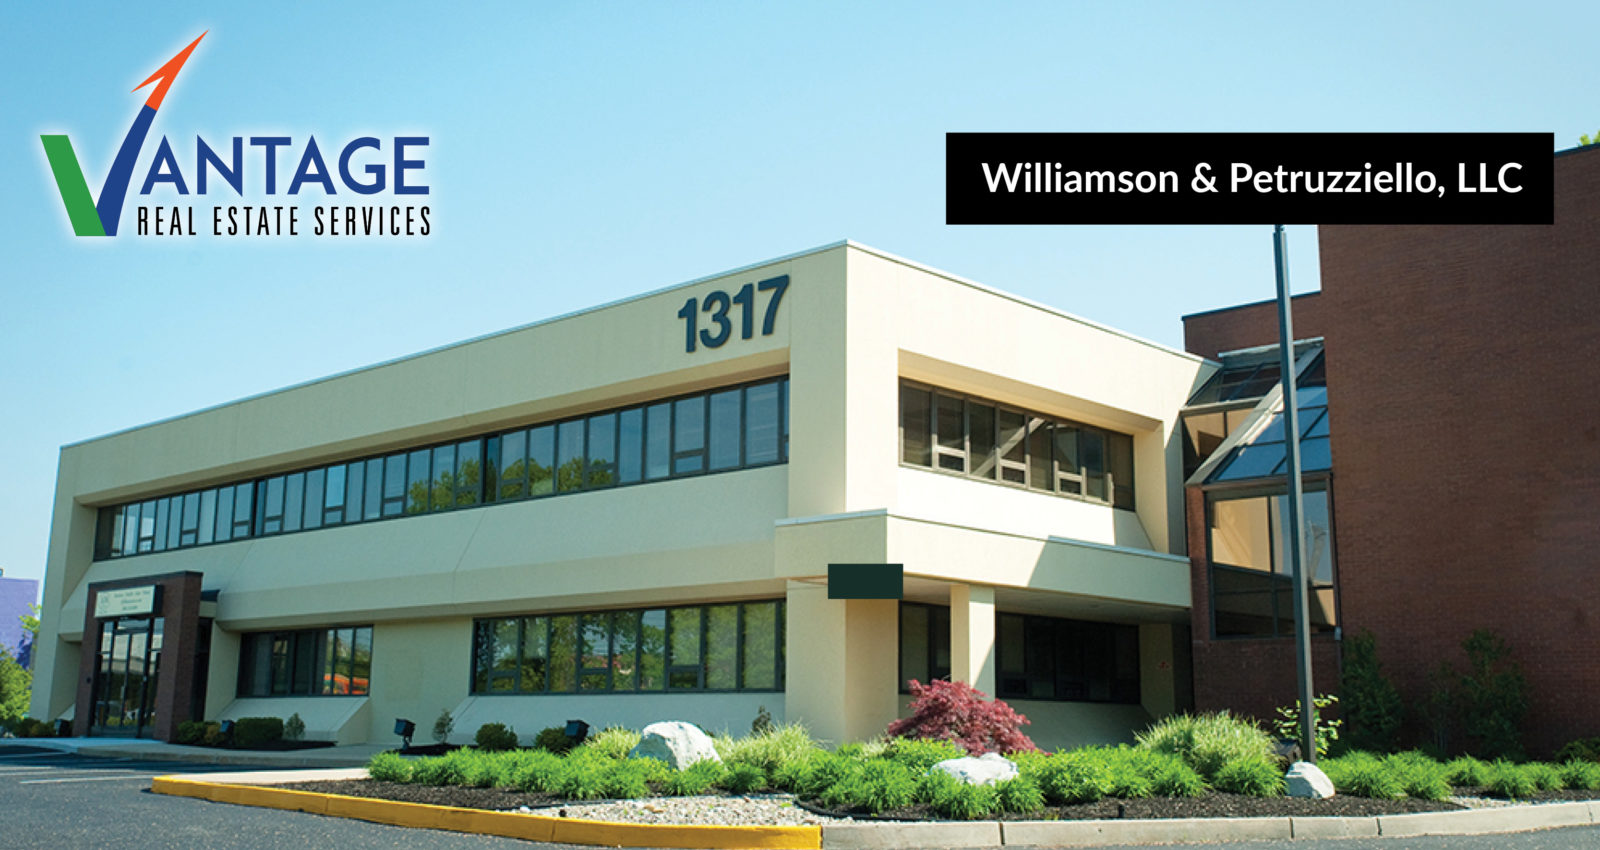 Captivating Williamson U0026 Petruzziello, LLC Leases Class A Office Space In Mount Laurel,  New Jersey